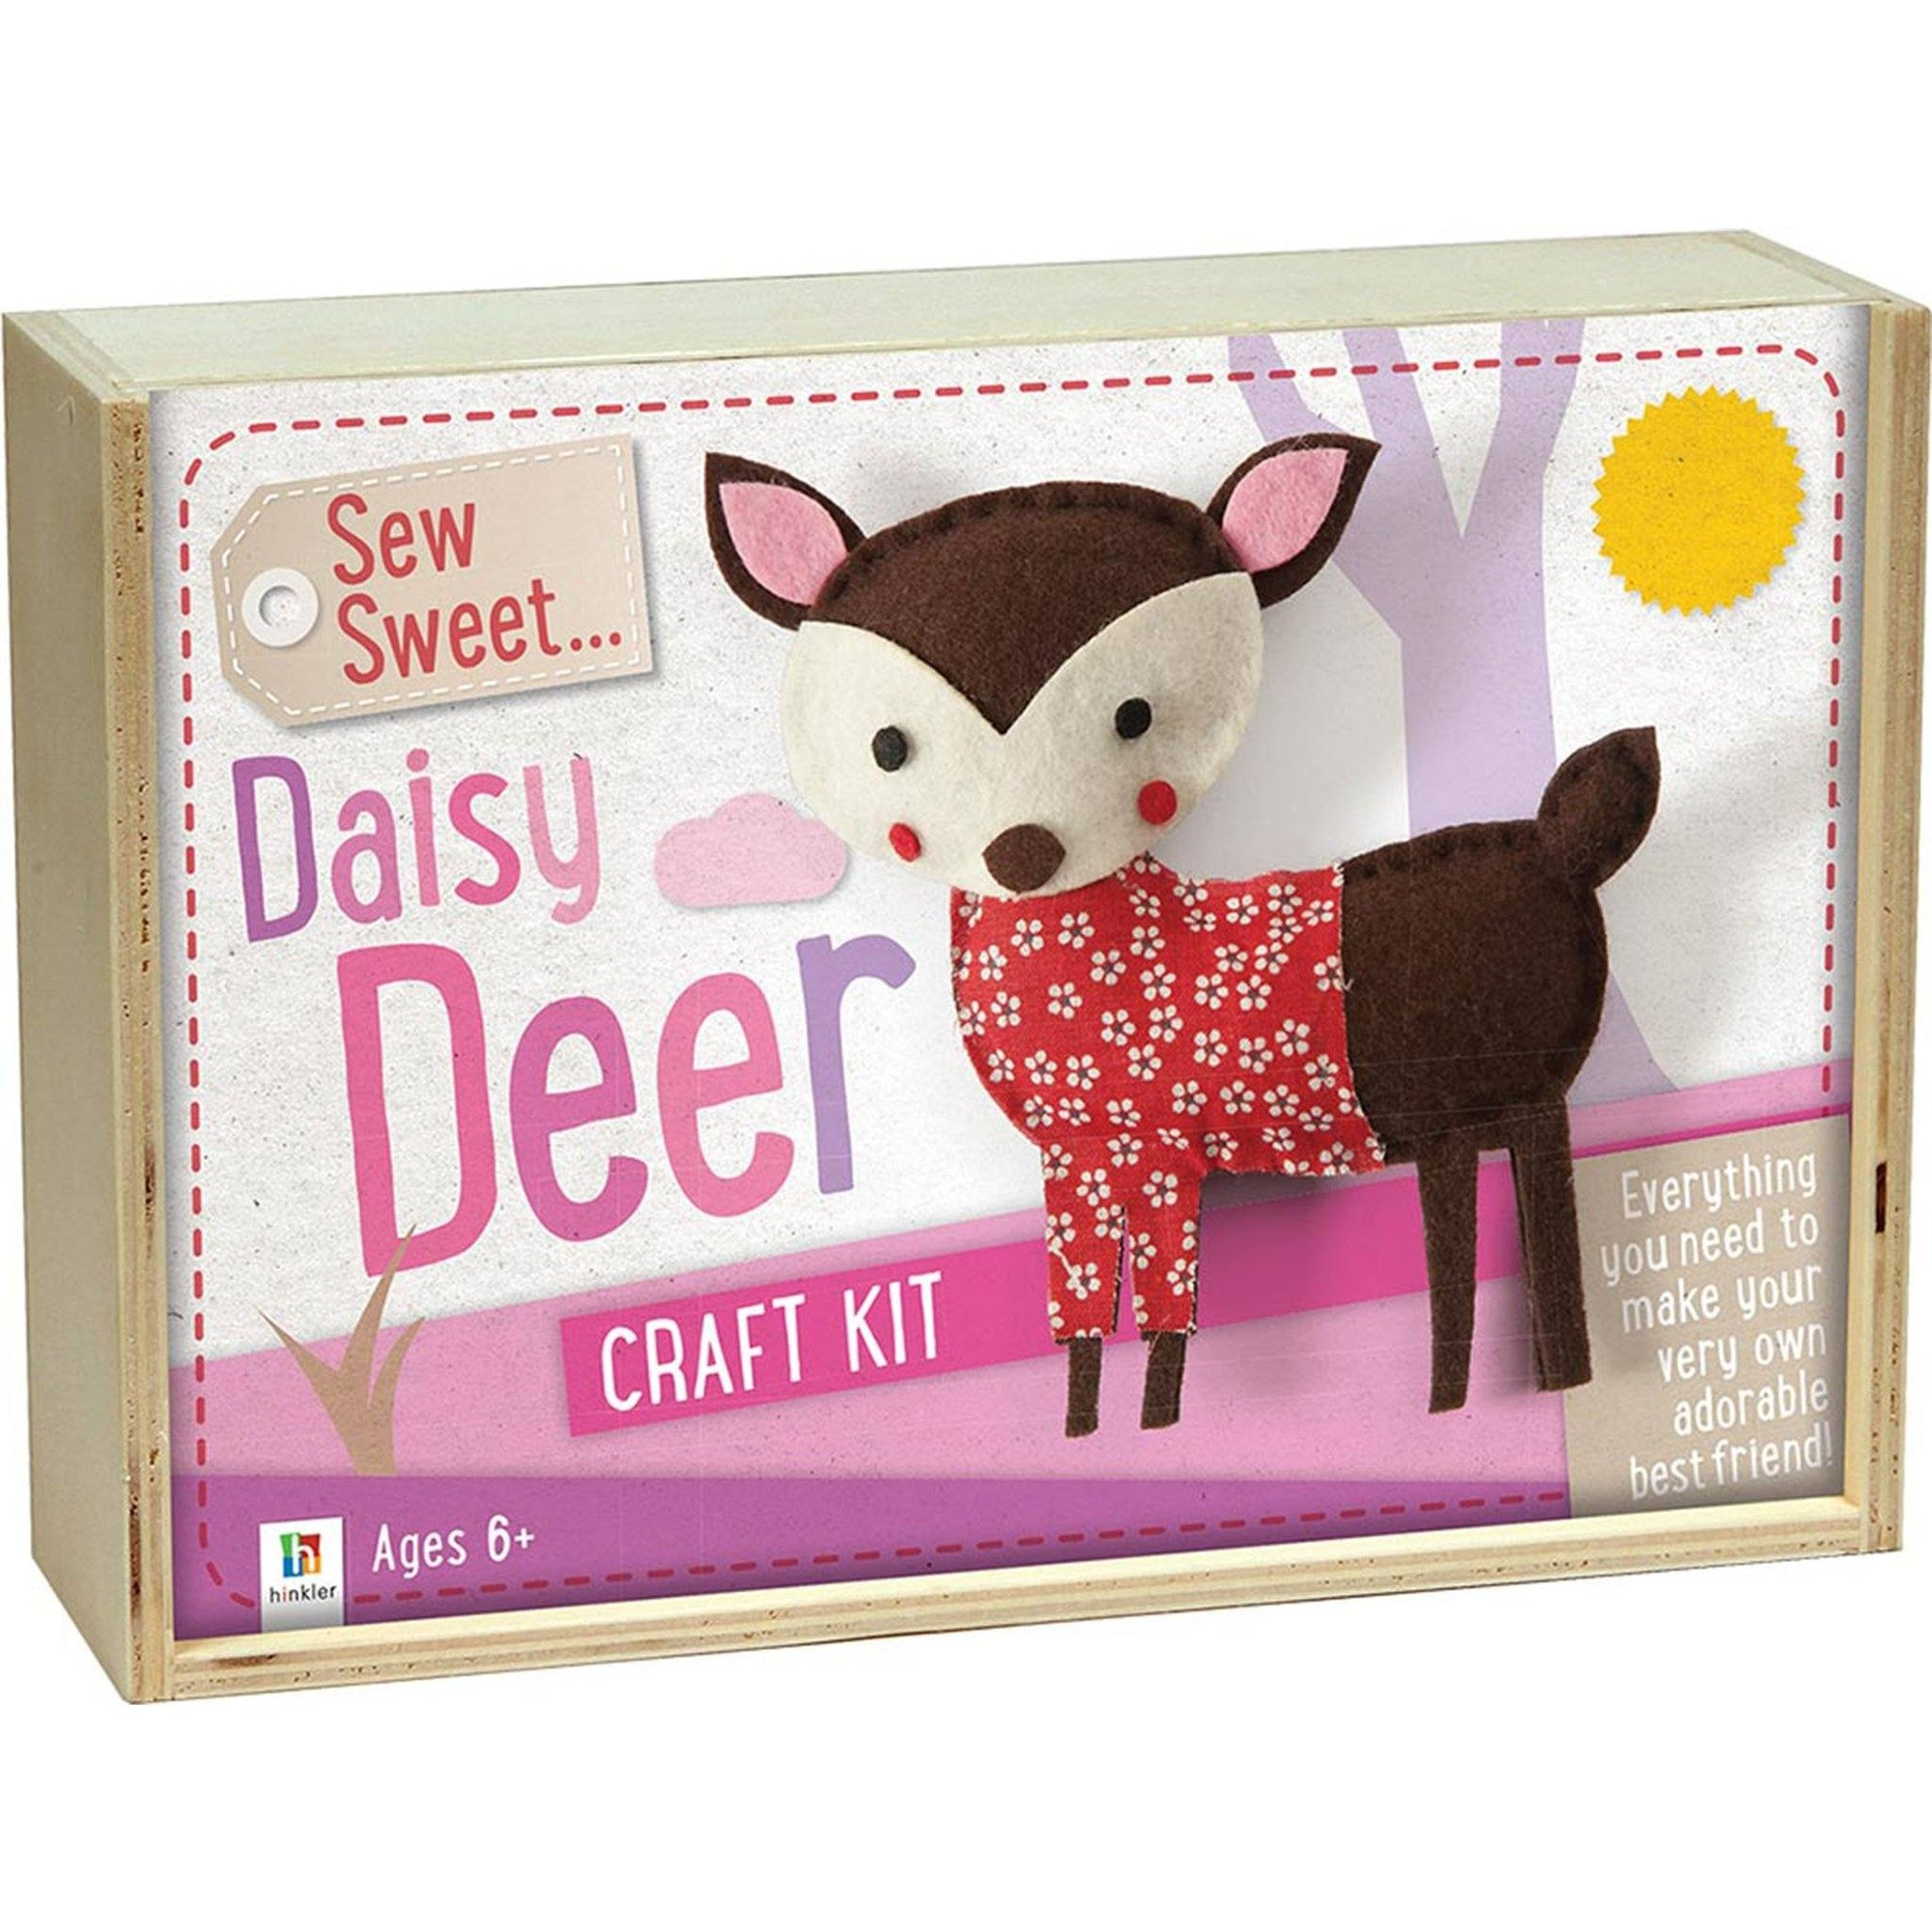 Sew Sweet: Daisy Deer Wooden Box (UK) Books Hinkler Books